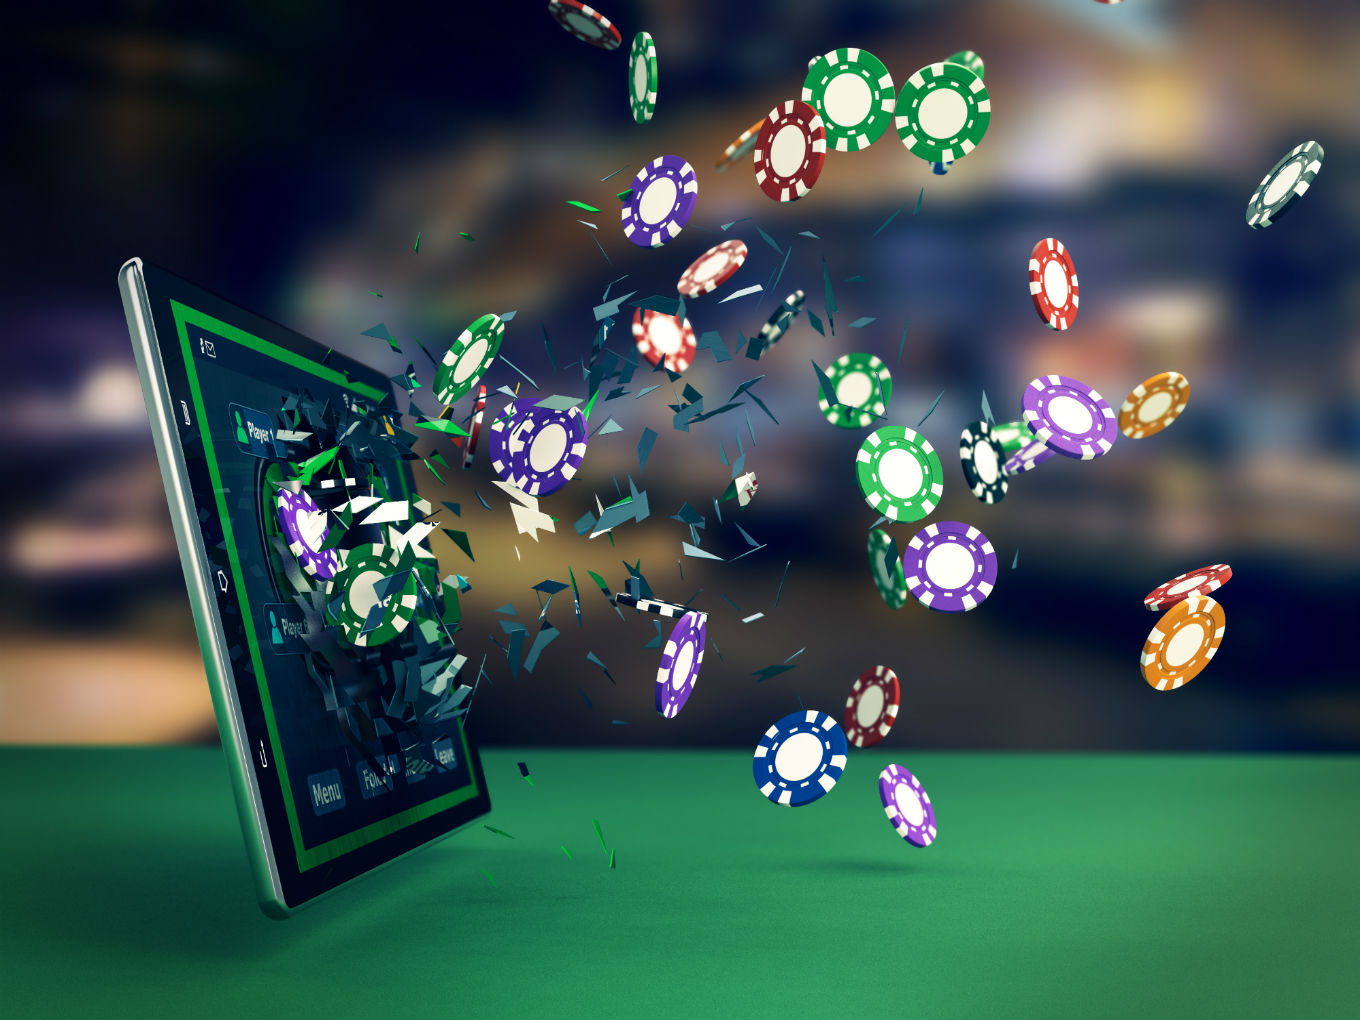 Online Poker Platform 9stacks Raises $1.37 Mn In Pre-Series A Round